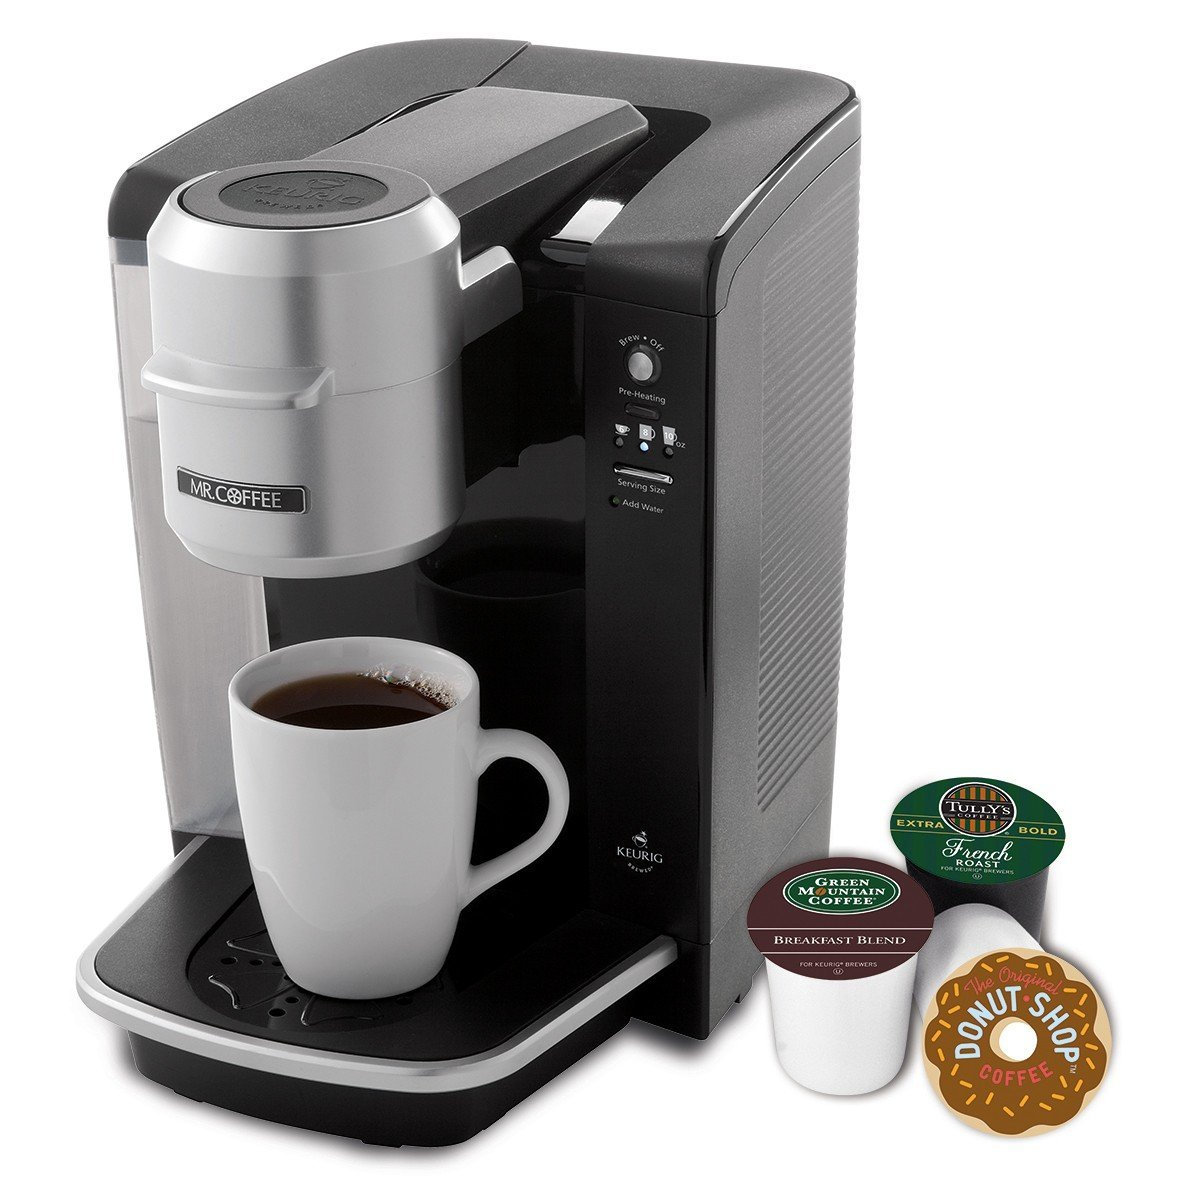 Mr. Coffee Single Serve Coffee Brewer Just USD 64.99 (Reg. USD 119.99)